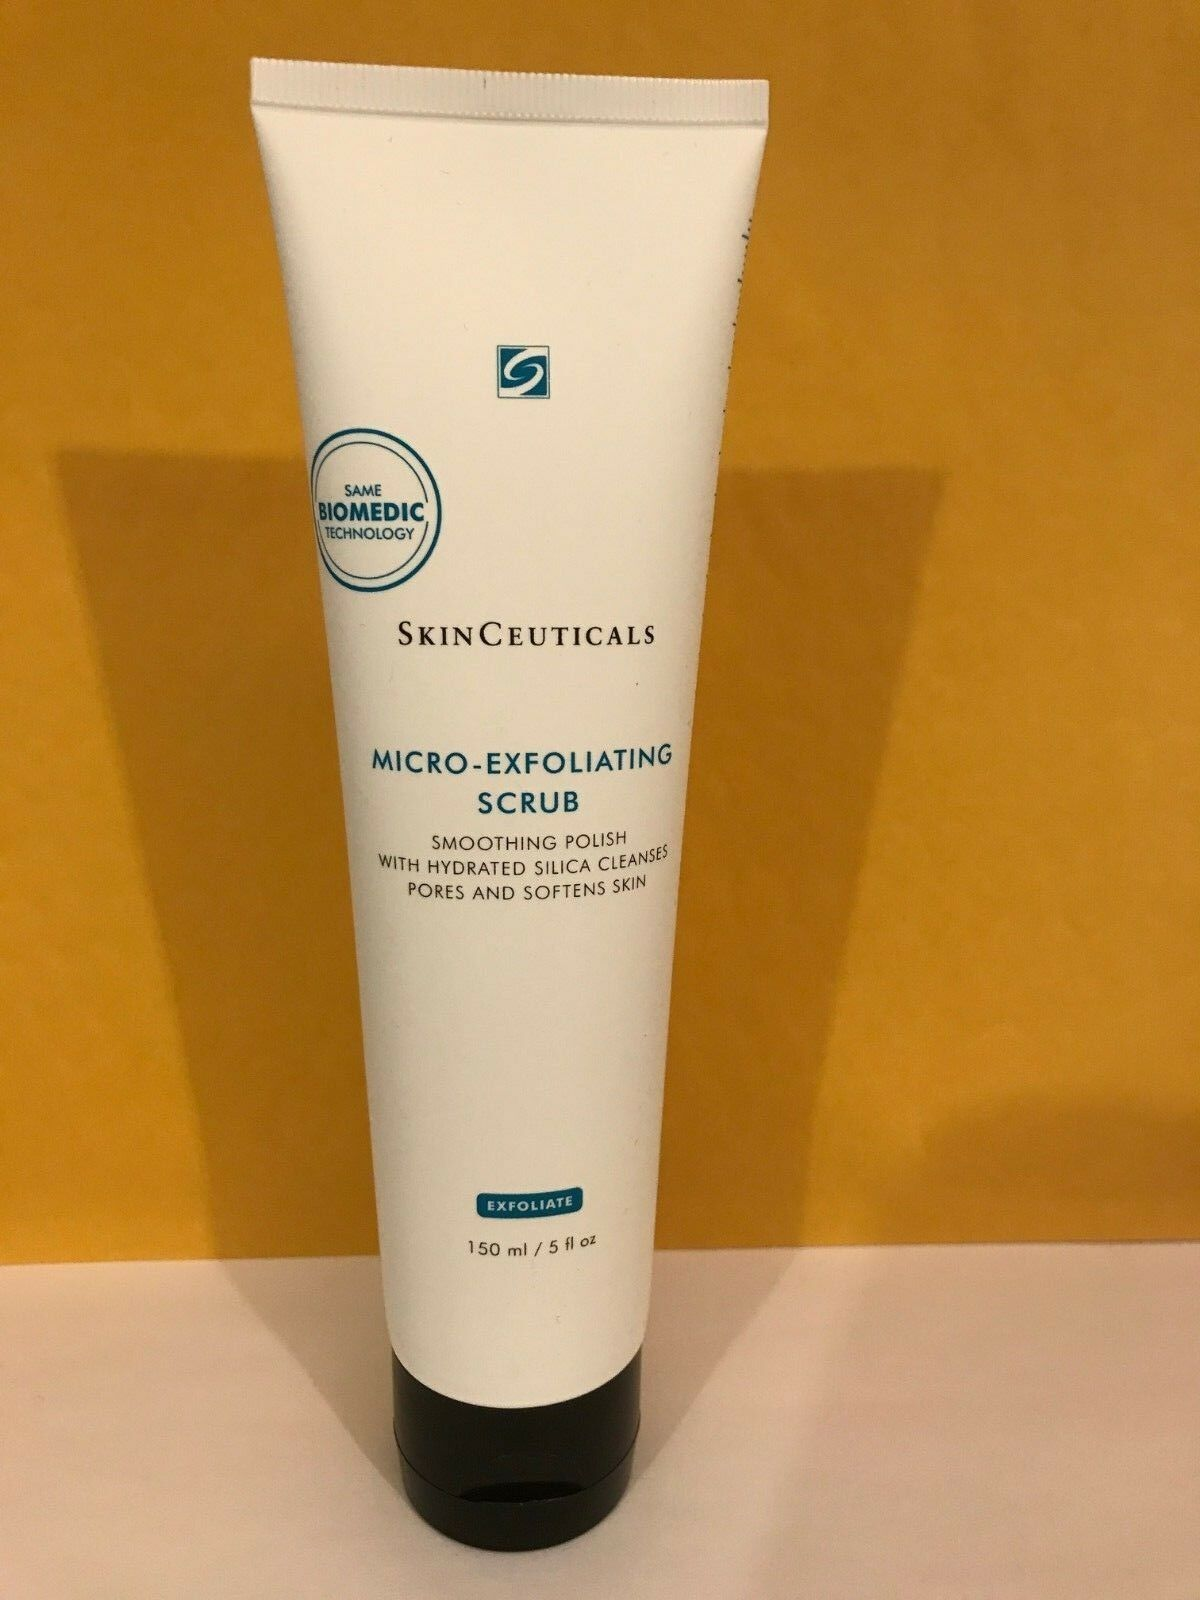 Skinceuticals Micro Exfoliating Scrub Smoothing Polish 5oz / 150ml Brand